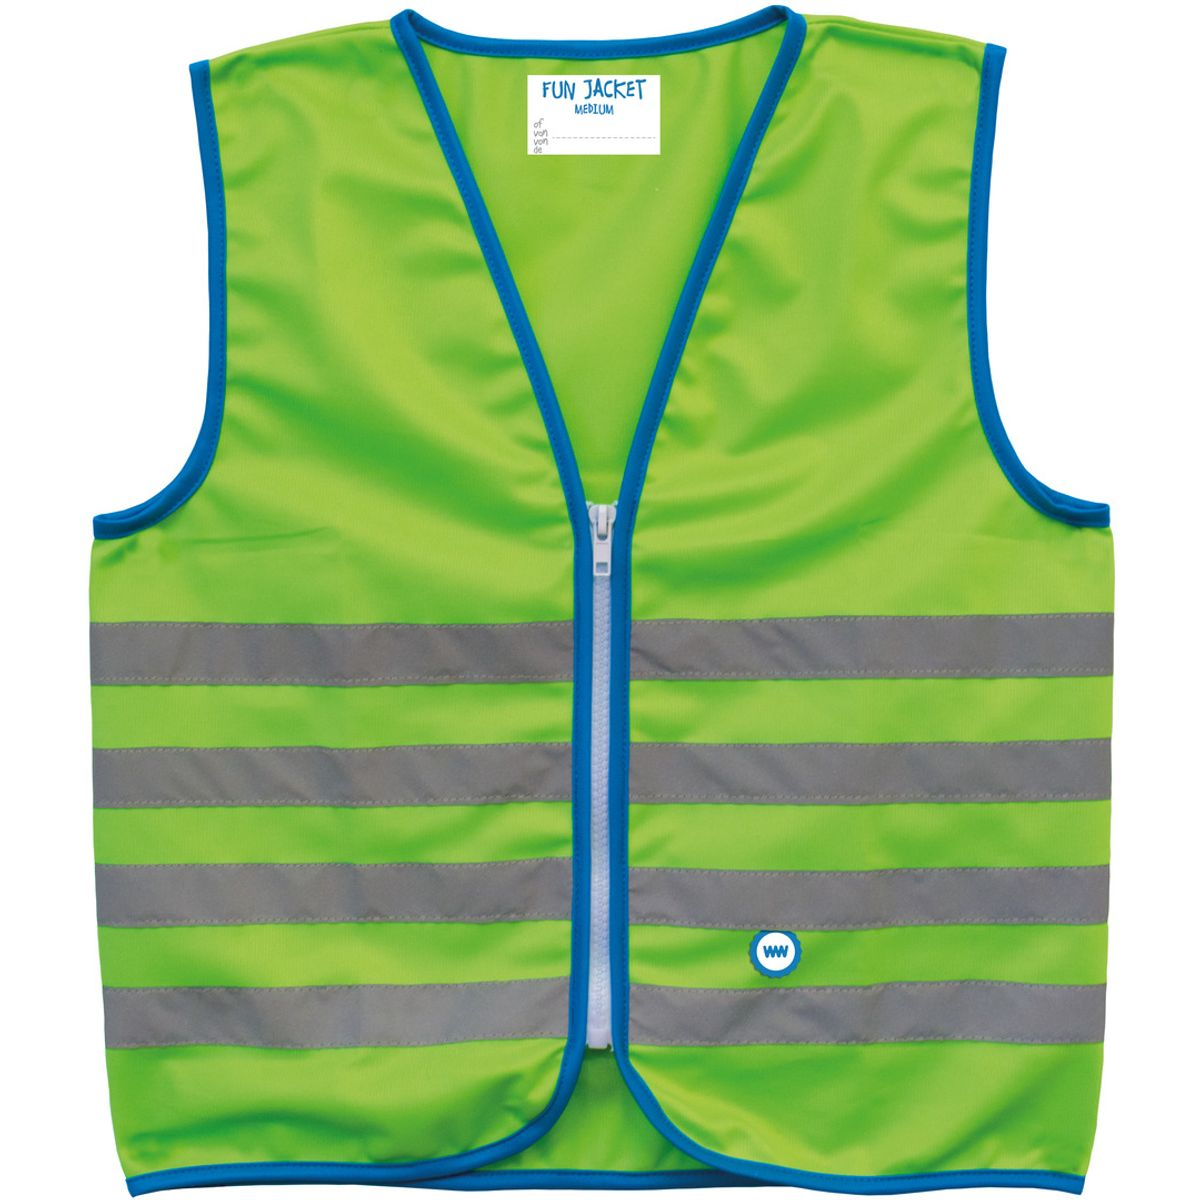 WOWOW FUN JACKET children's reflective vest | Veste